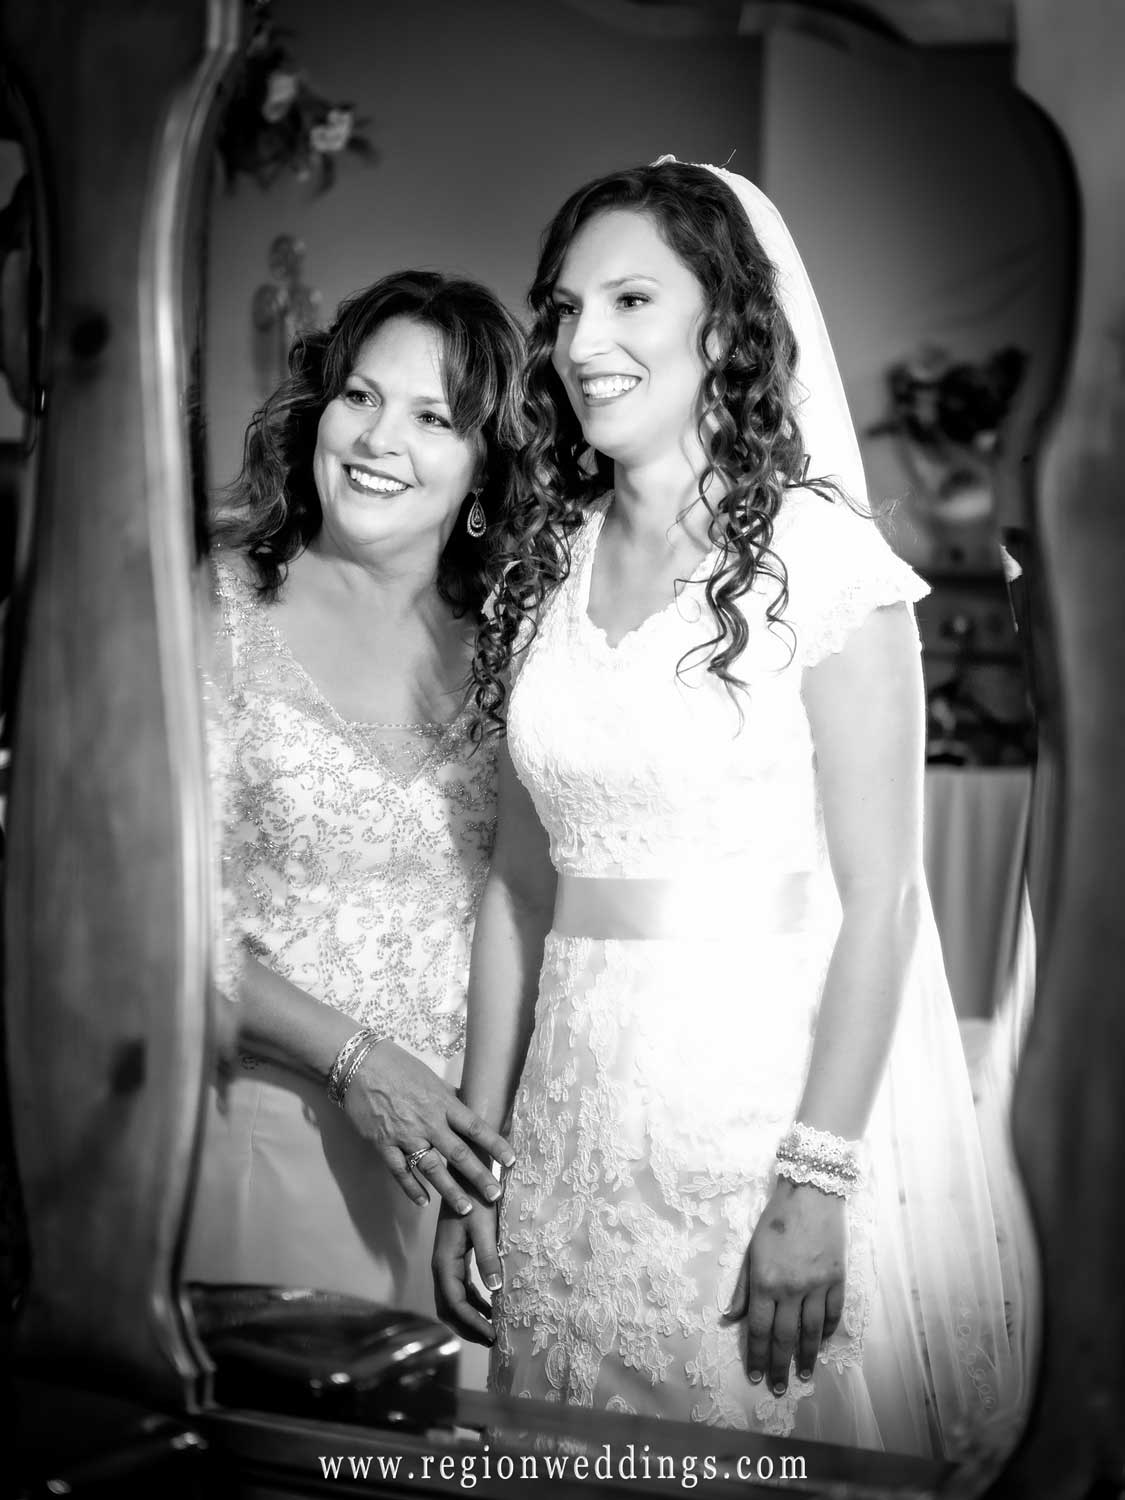 Mom and bride share a moment on wedding day.